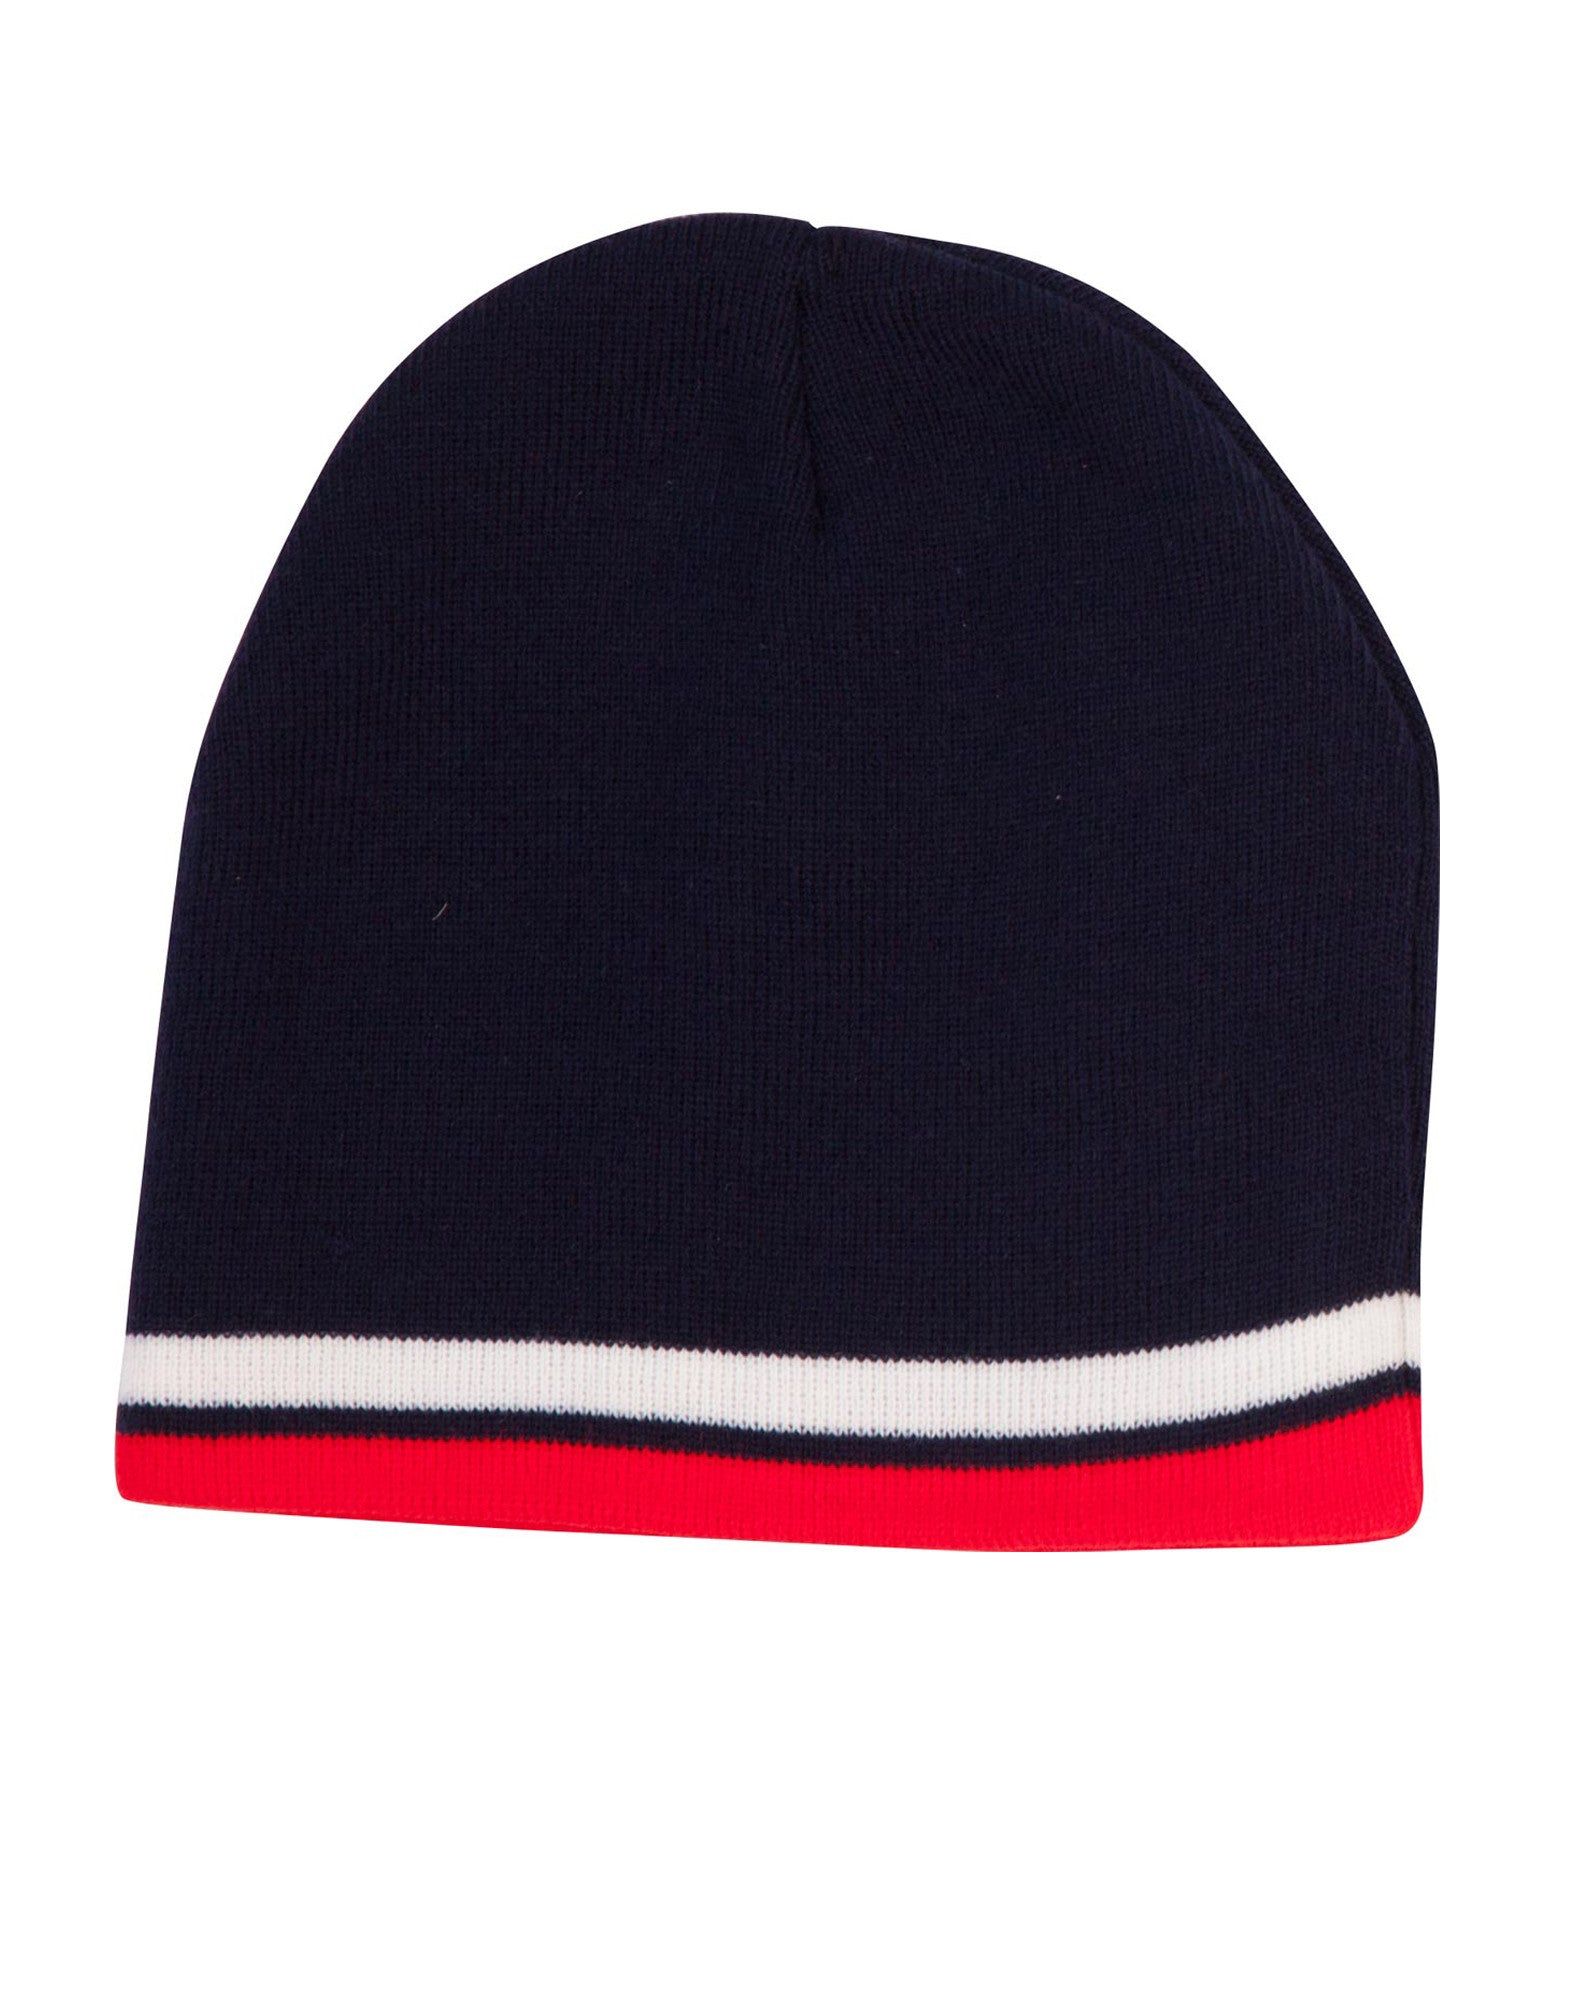 ae851854f96 Winning Spirit Knitted Acrylic With contrast Stripe Beanie Caps (CH63)